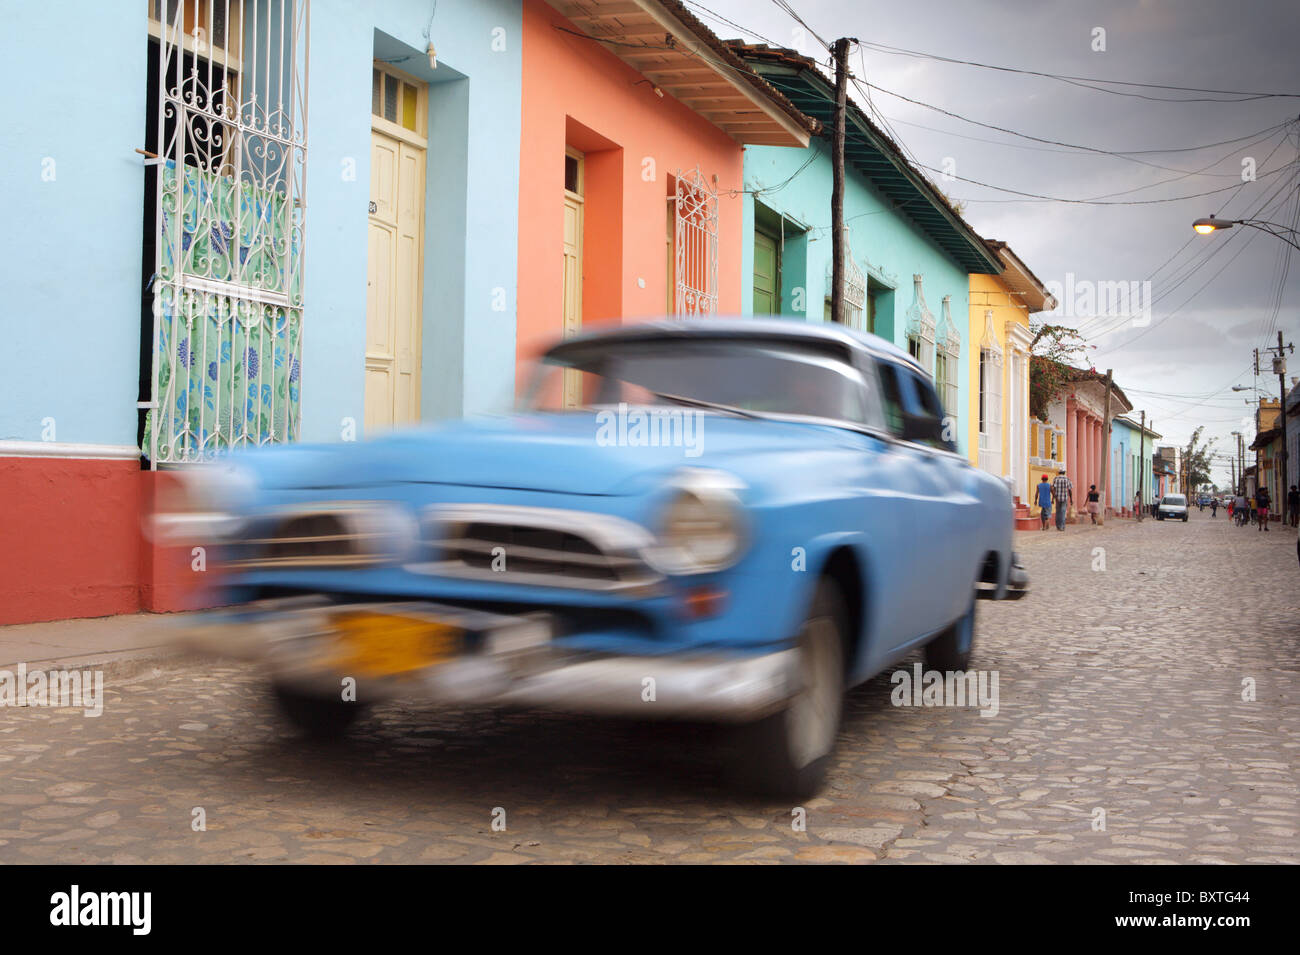 TRINIDAD: CLASSIC CAR ON COLOURFUL COLONIAL STREET Stock Photo